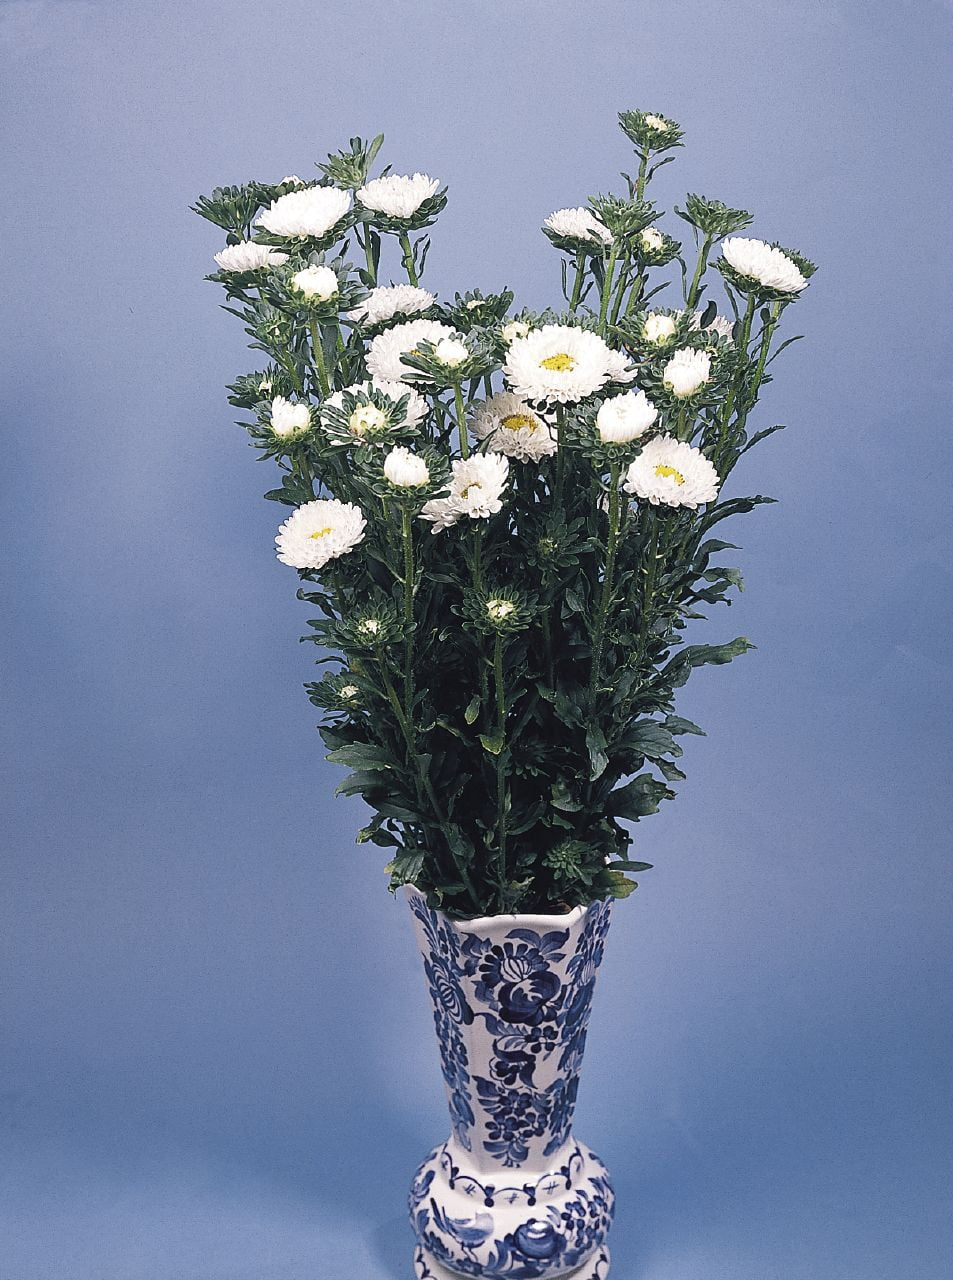 Aster Fan Whitewht Wellgrow Seeds Wht Wellgrow Seeds